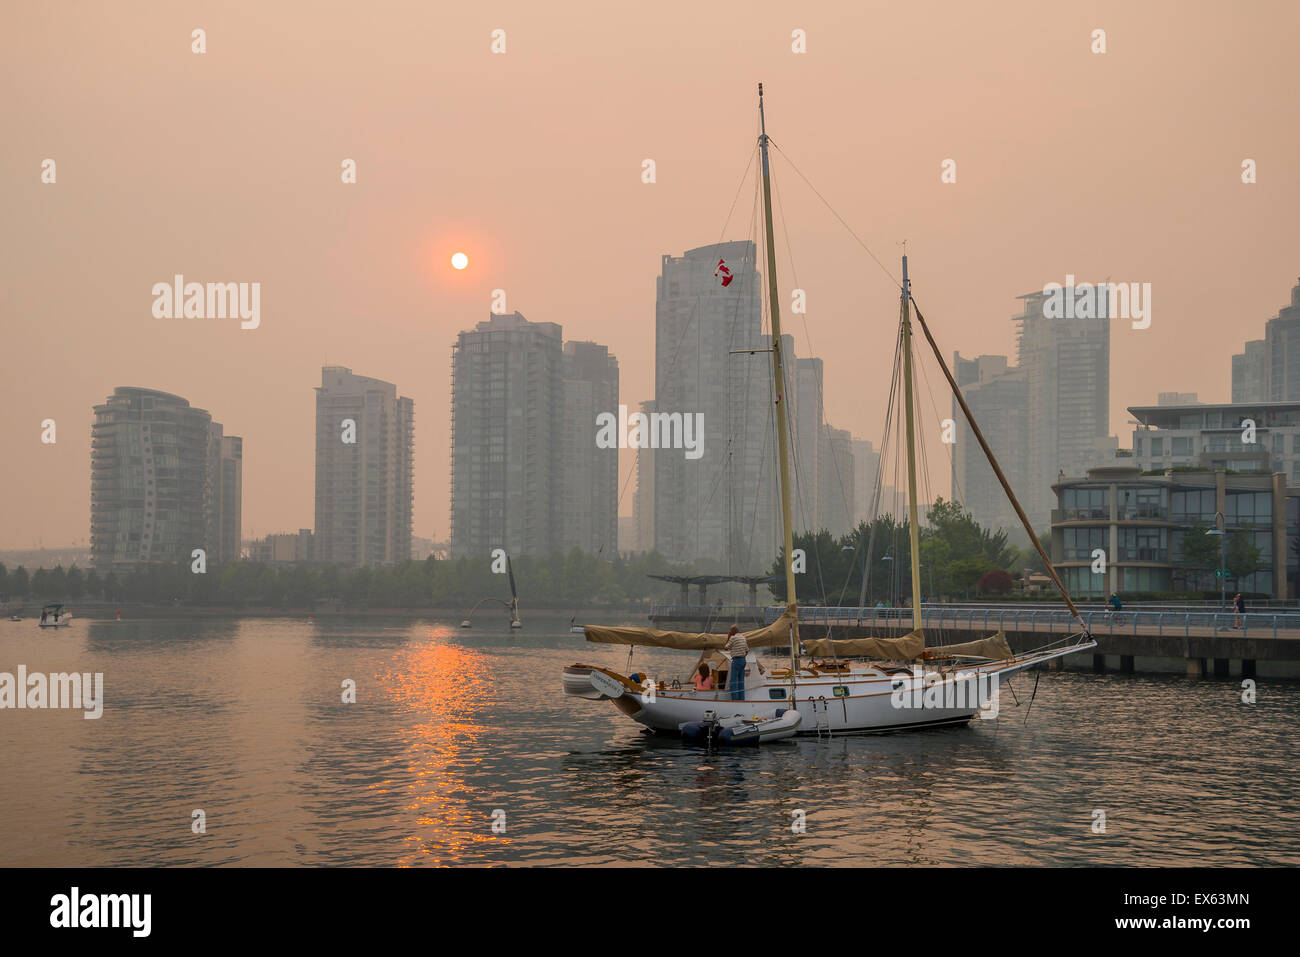 Registrare ad alto livello di inquinamento. Smoky tramonto a causa di incendi boschivi, False Creek, Vancouver, Immagini Stock